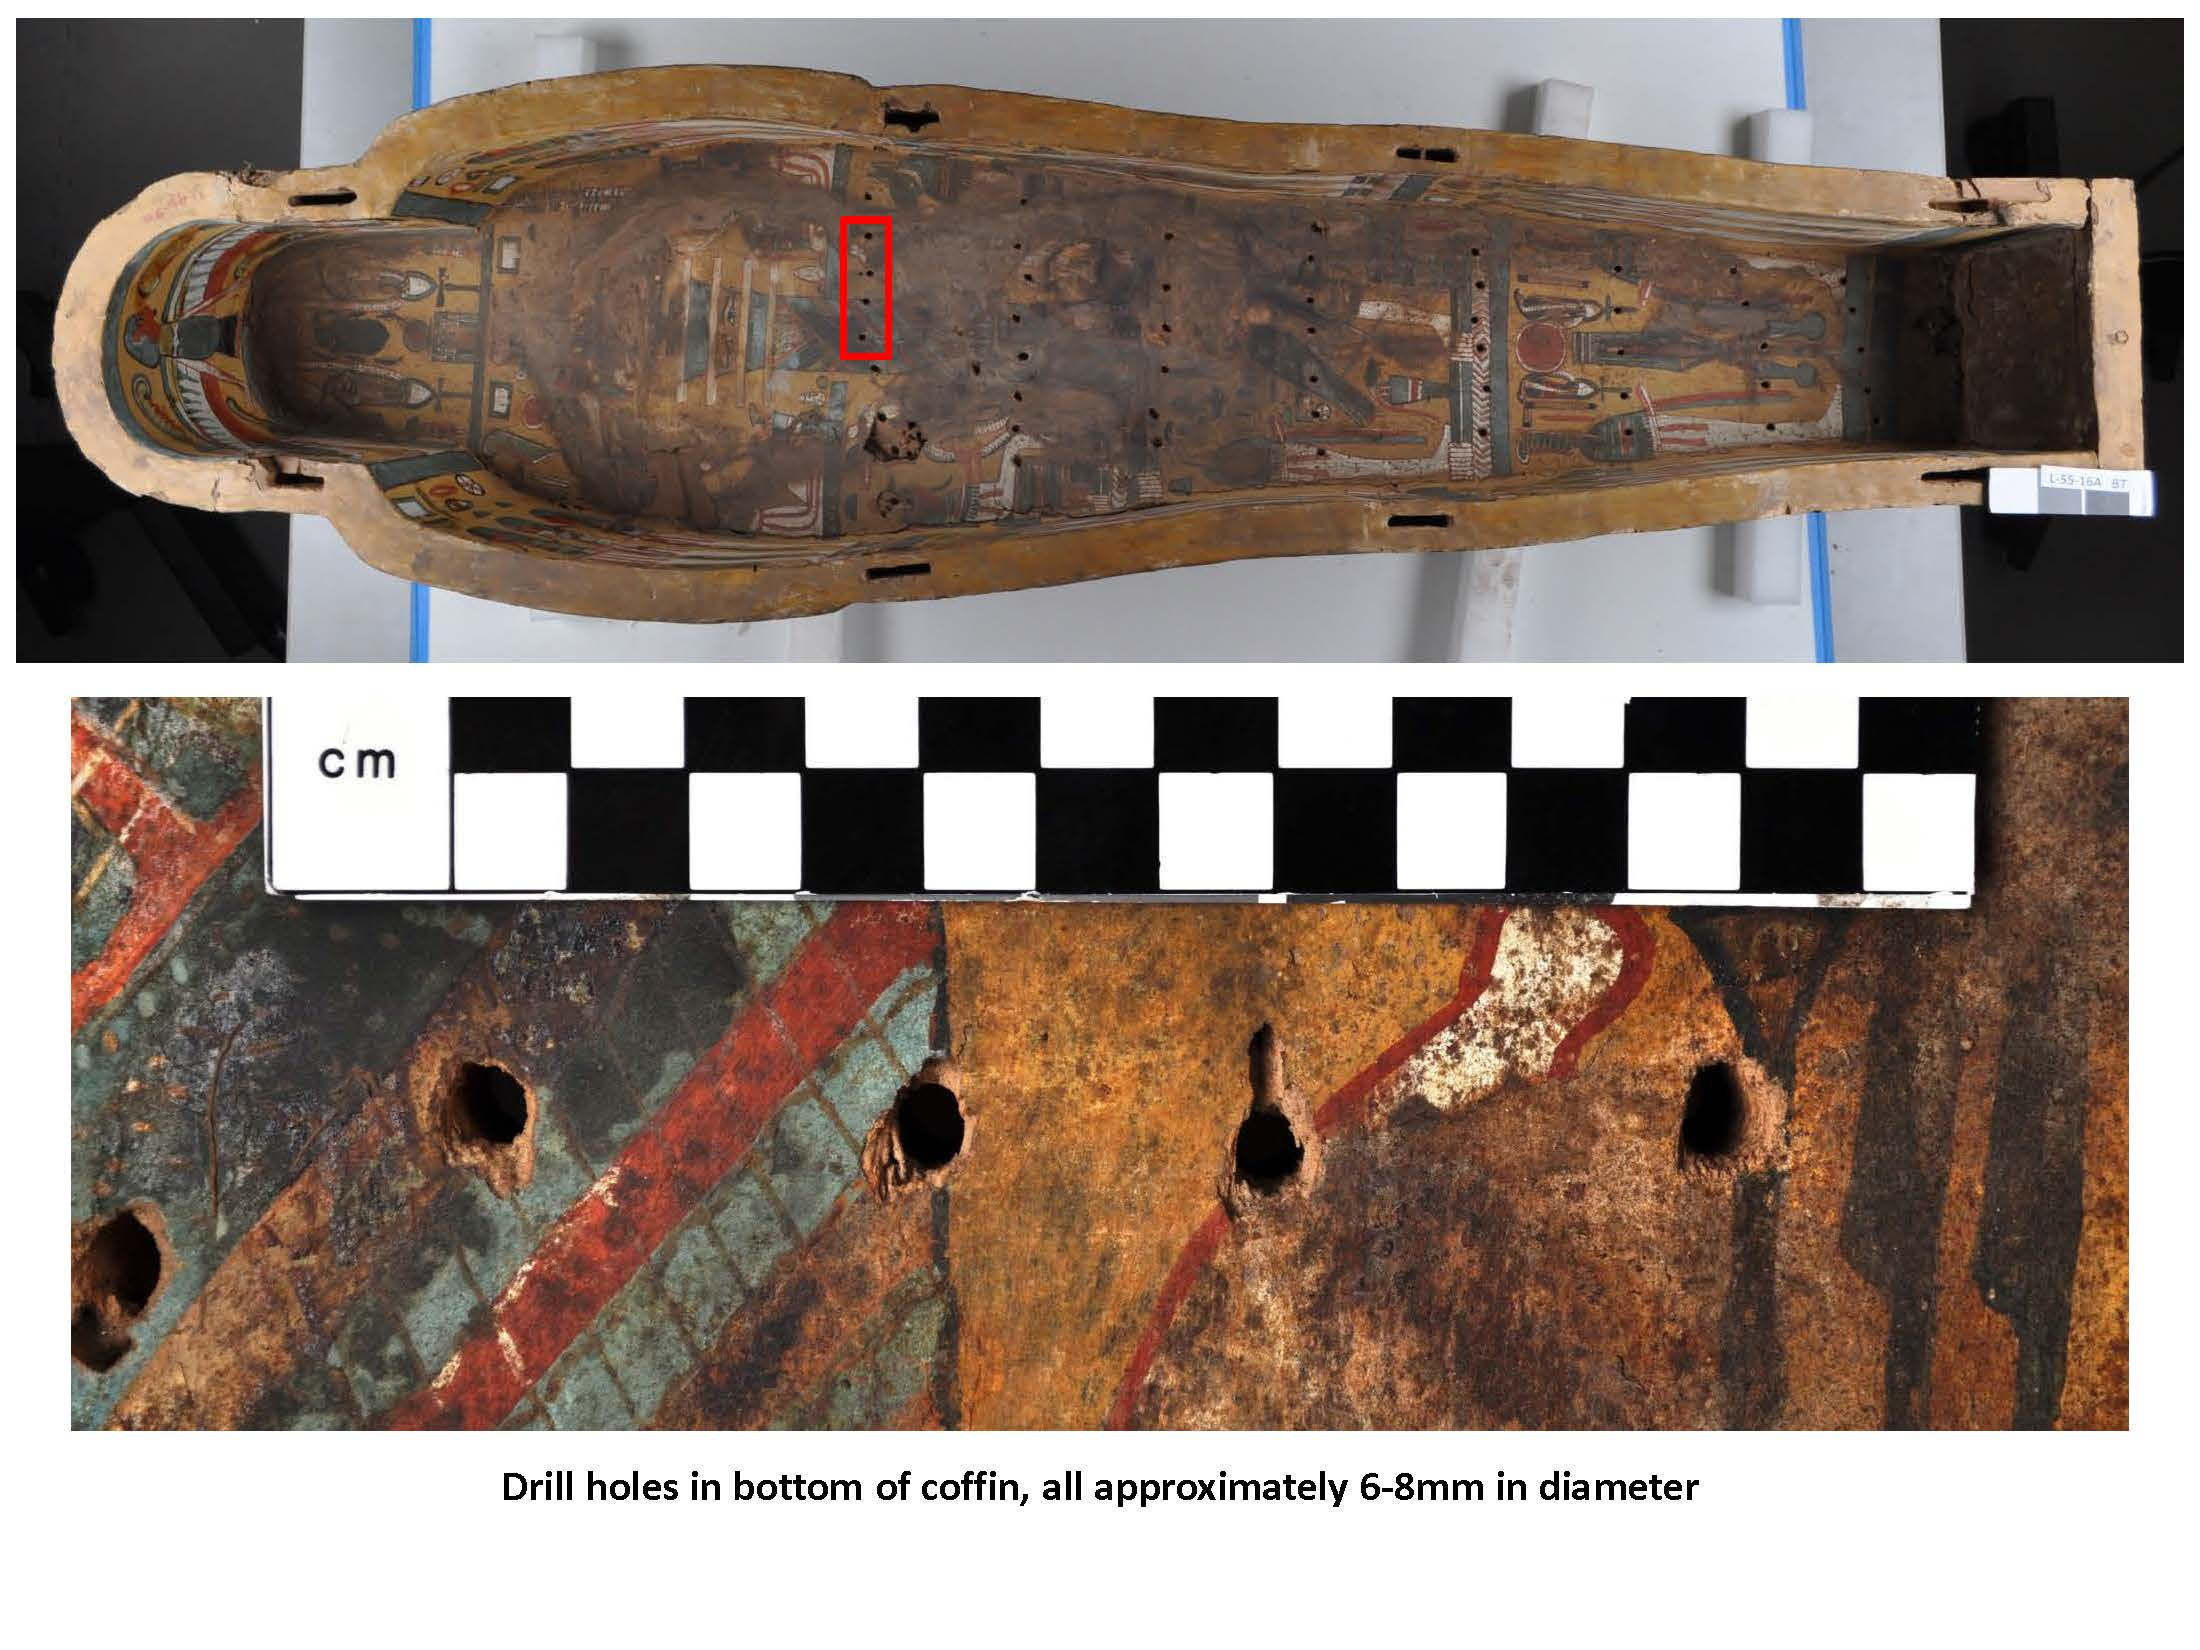 An overall shot of the coffin bottom, with a detail of 4 of the holes below.